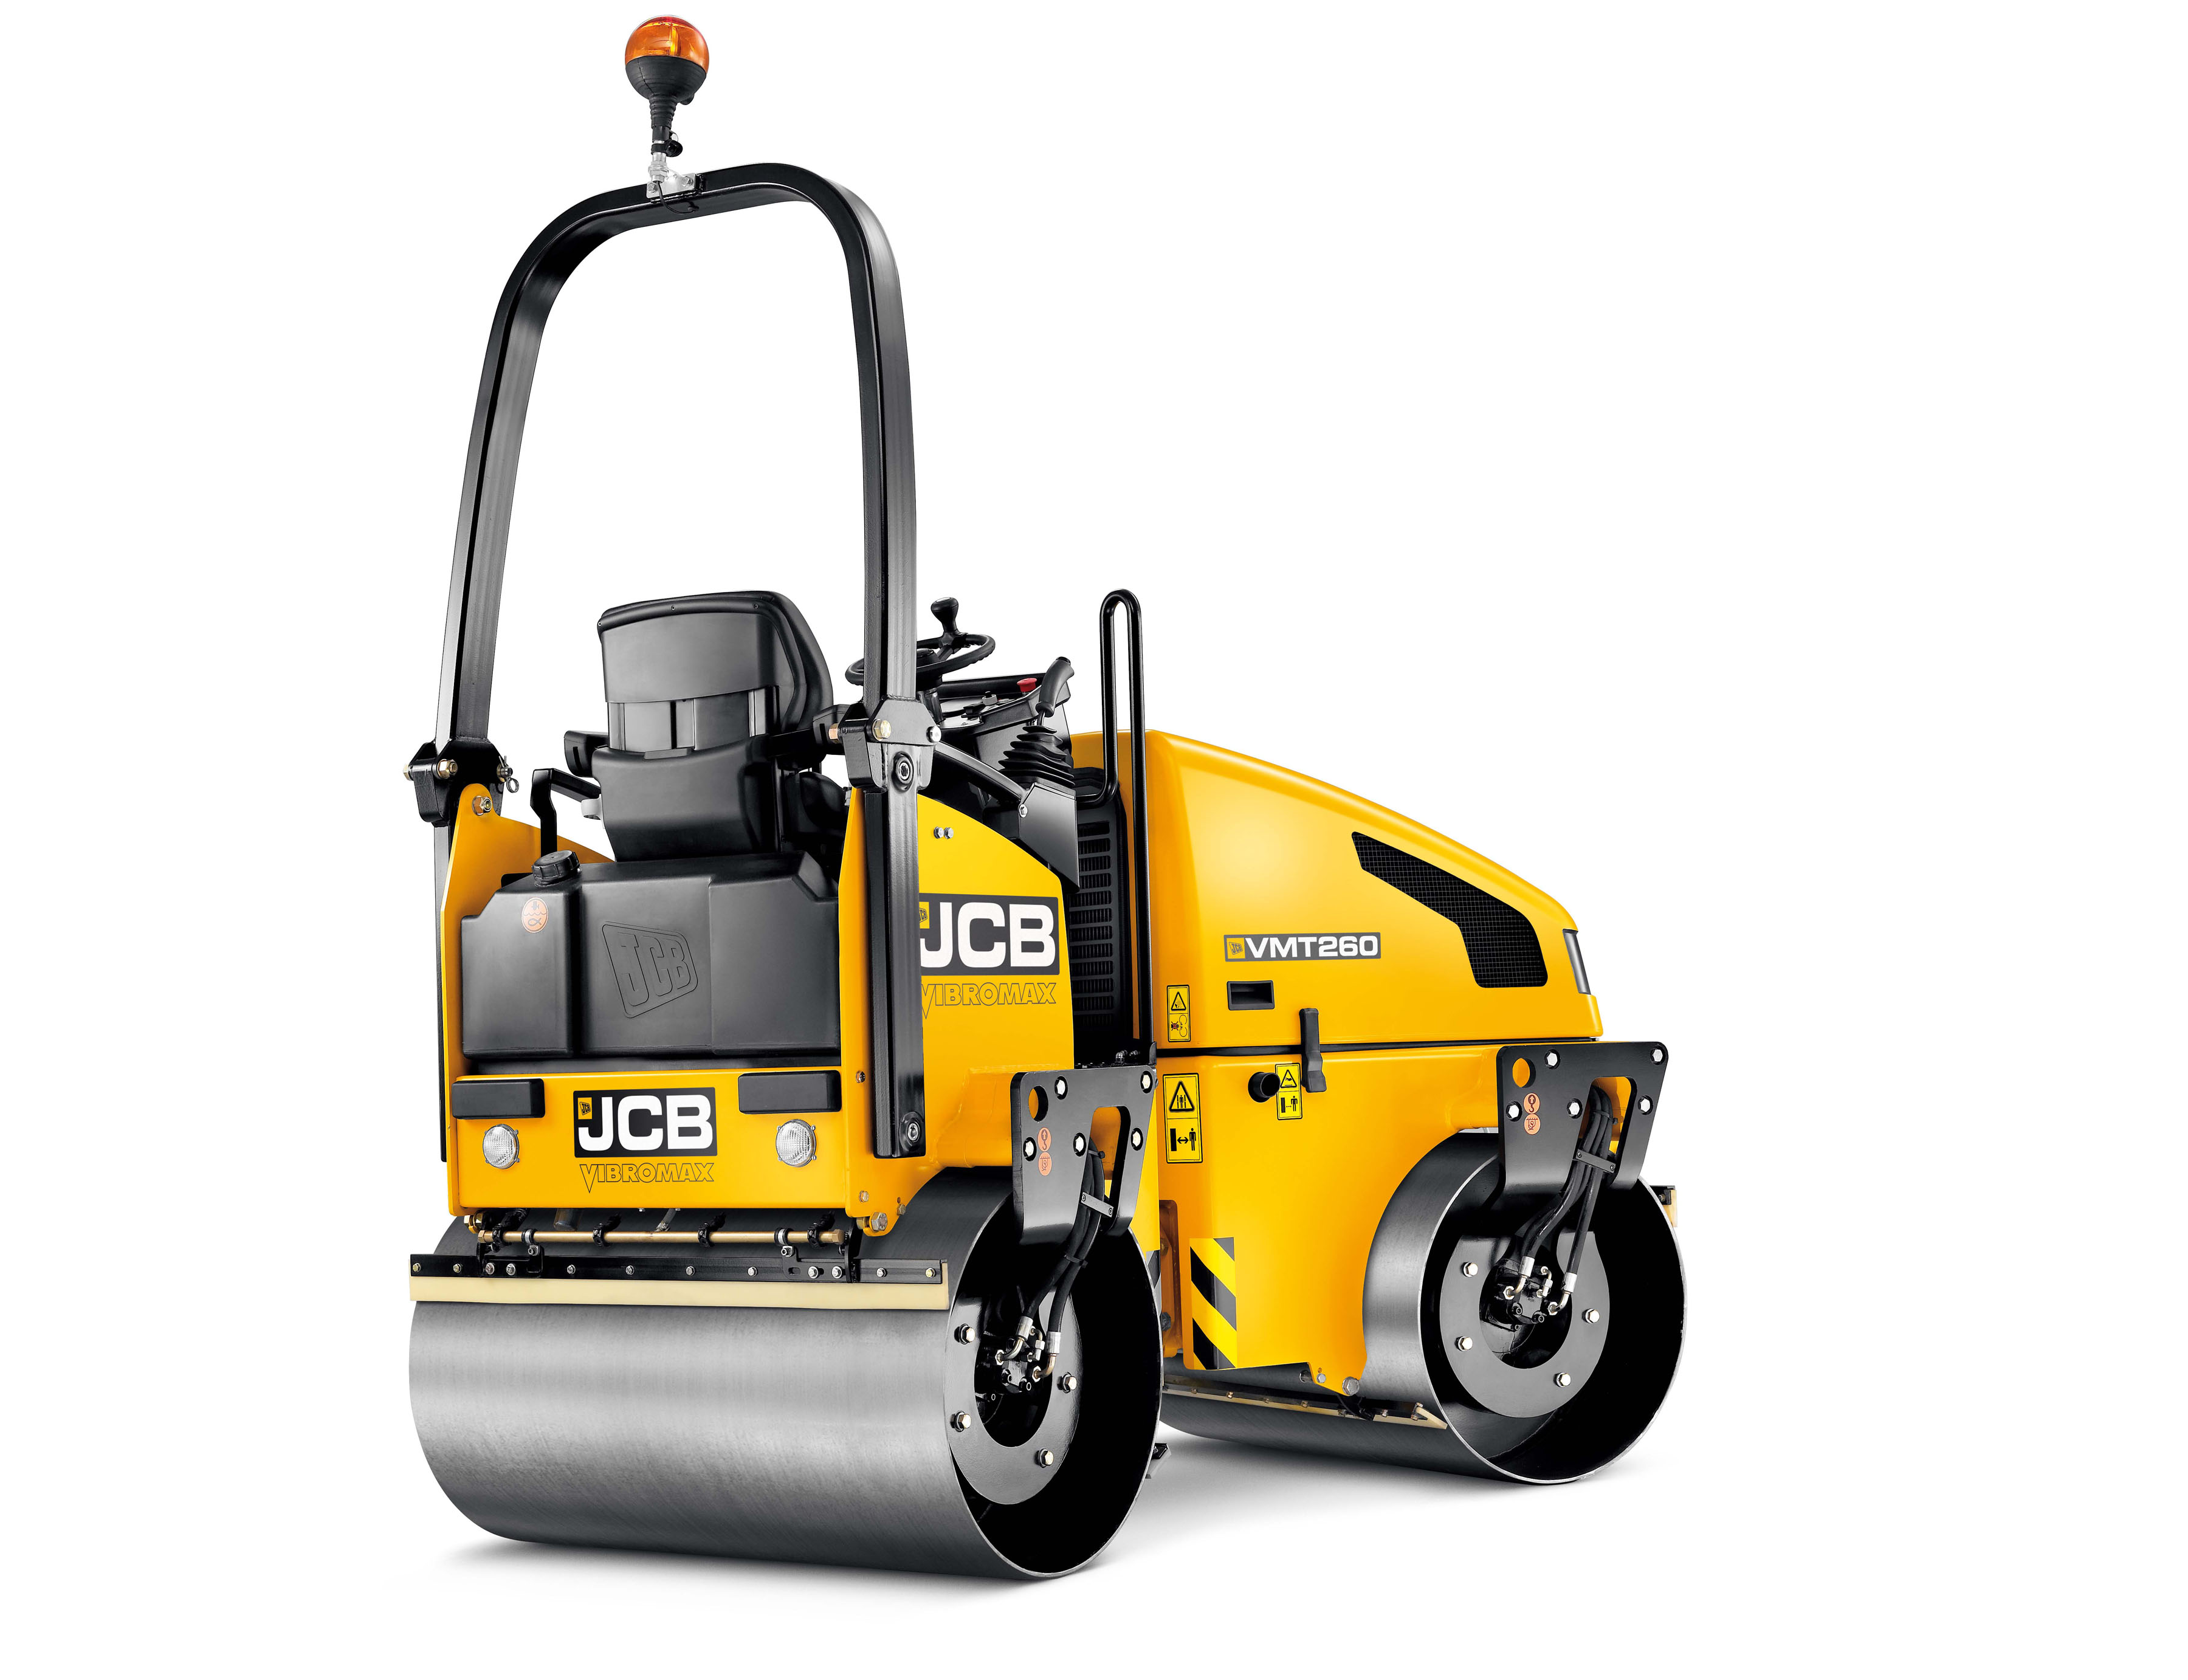 Jcb vmt photo - 3